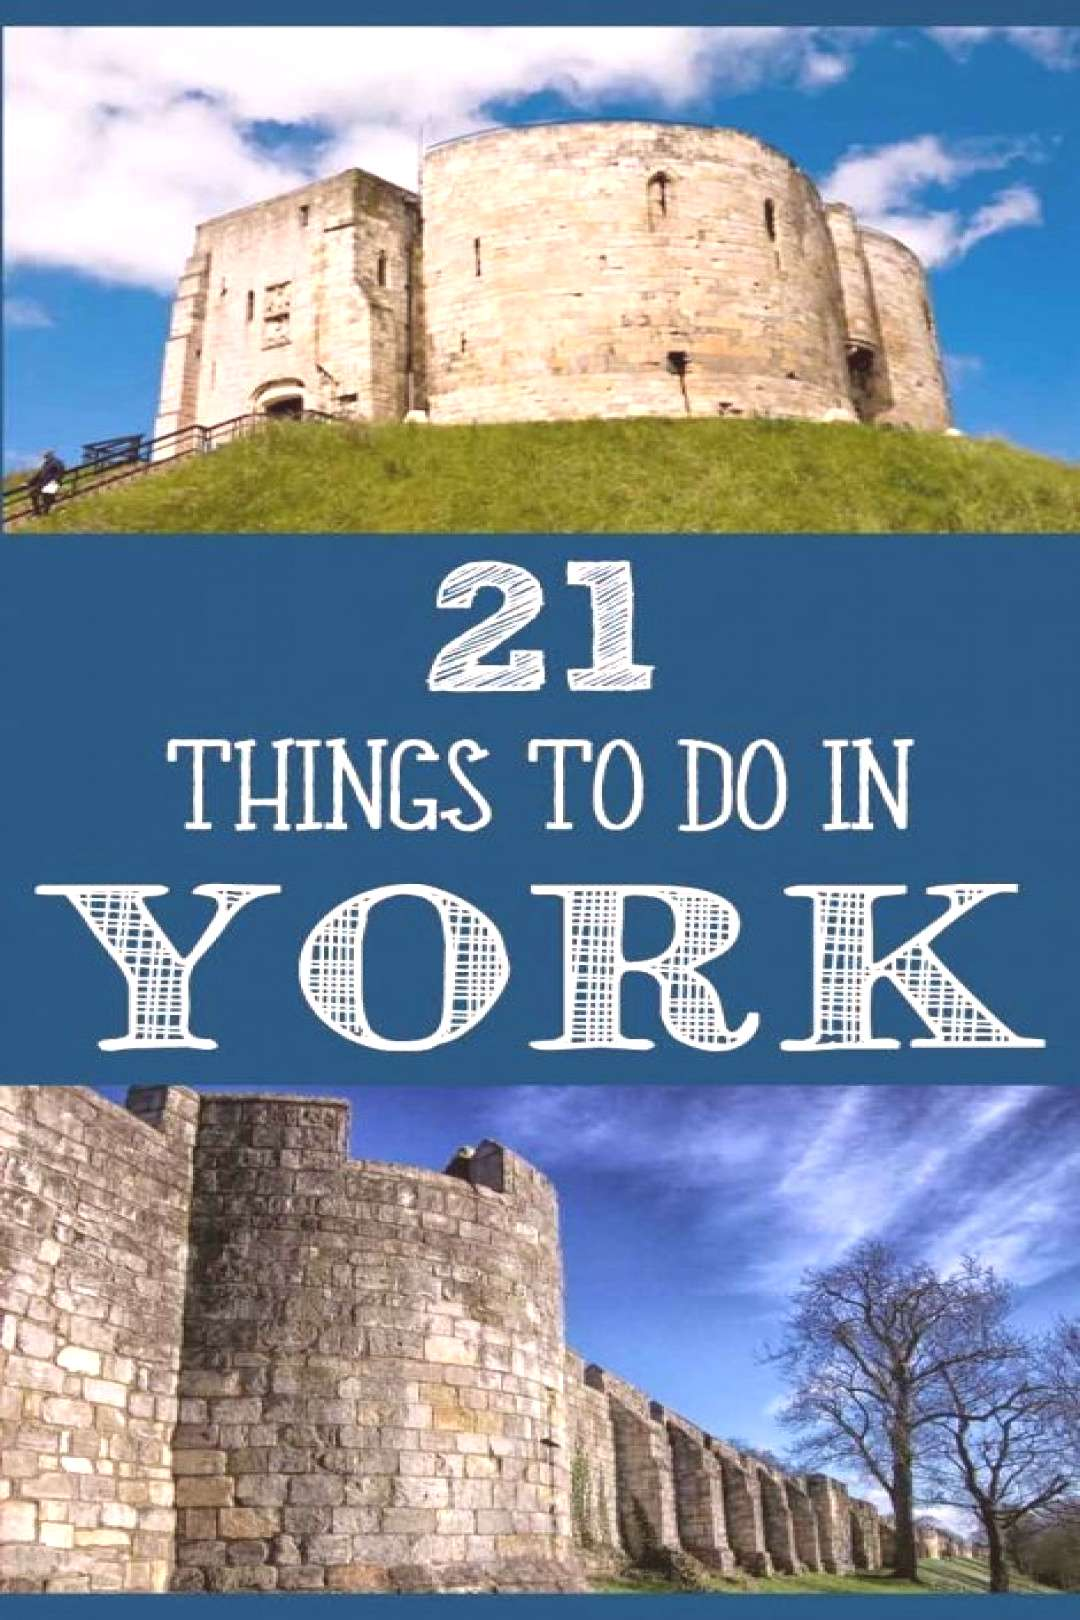 21 Best things to do in York - by a local ⋆ Yorkshire Wonders Things to do in York. There are so